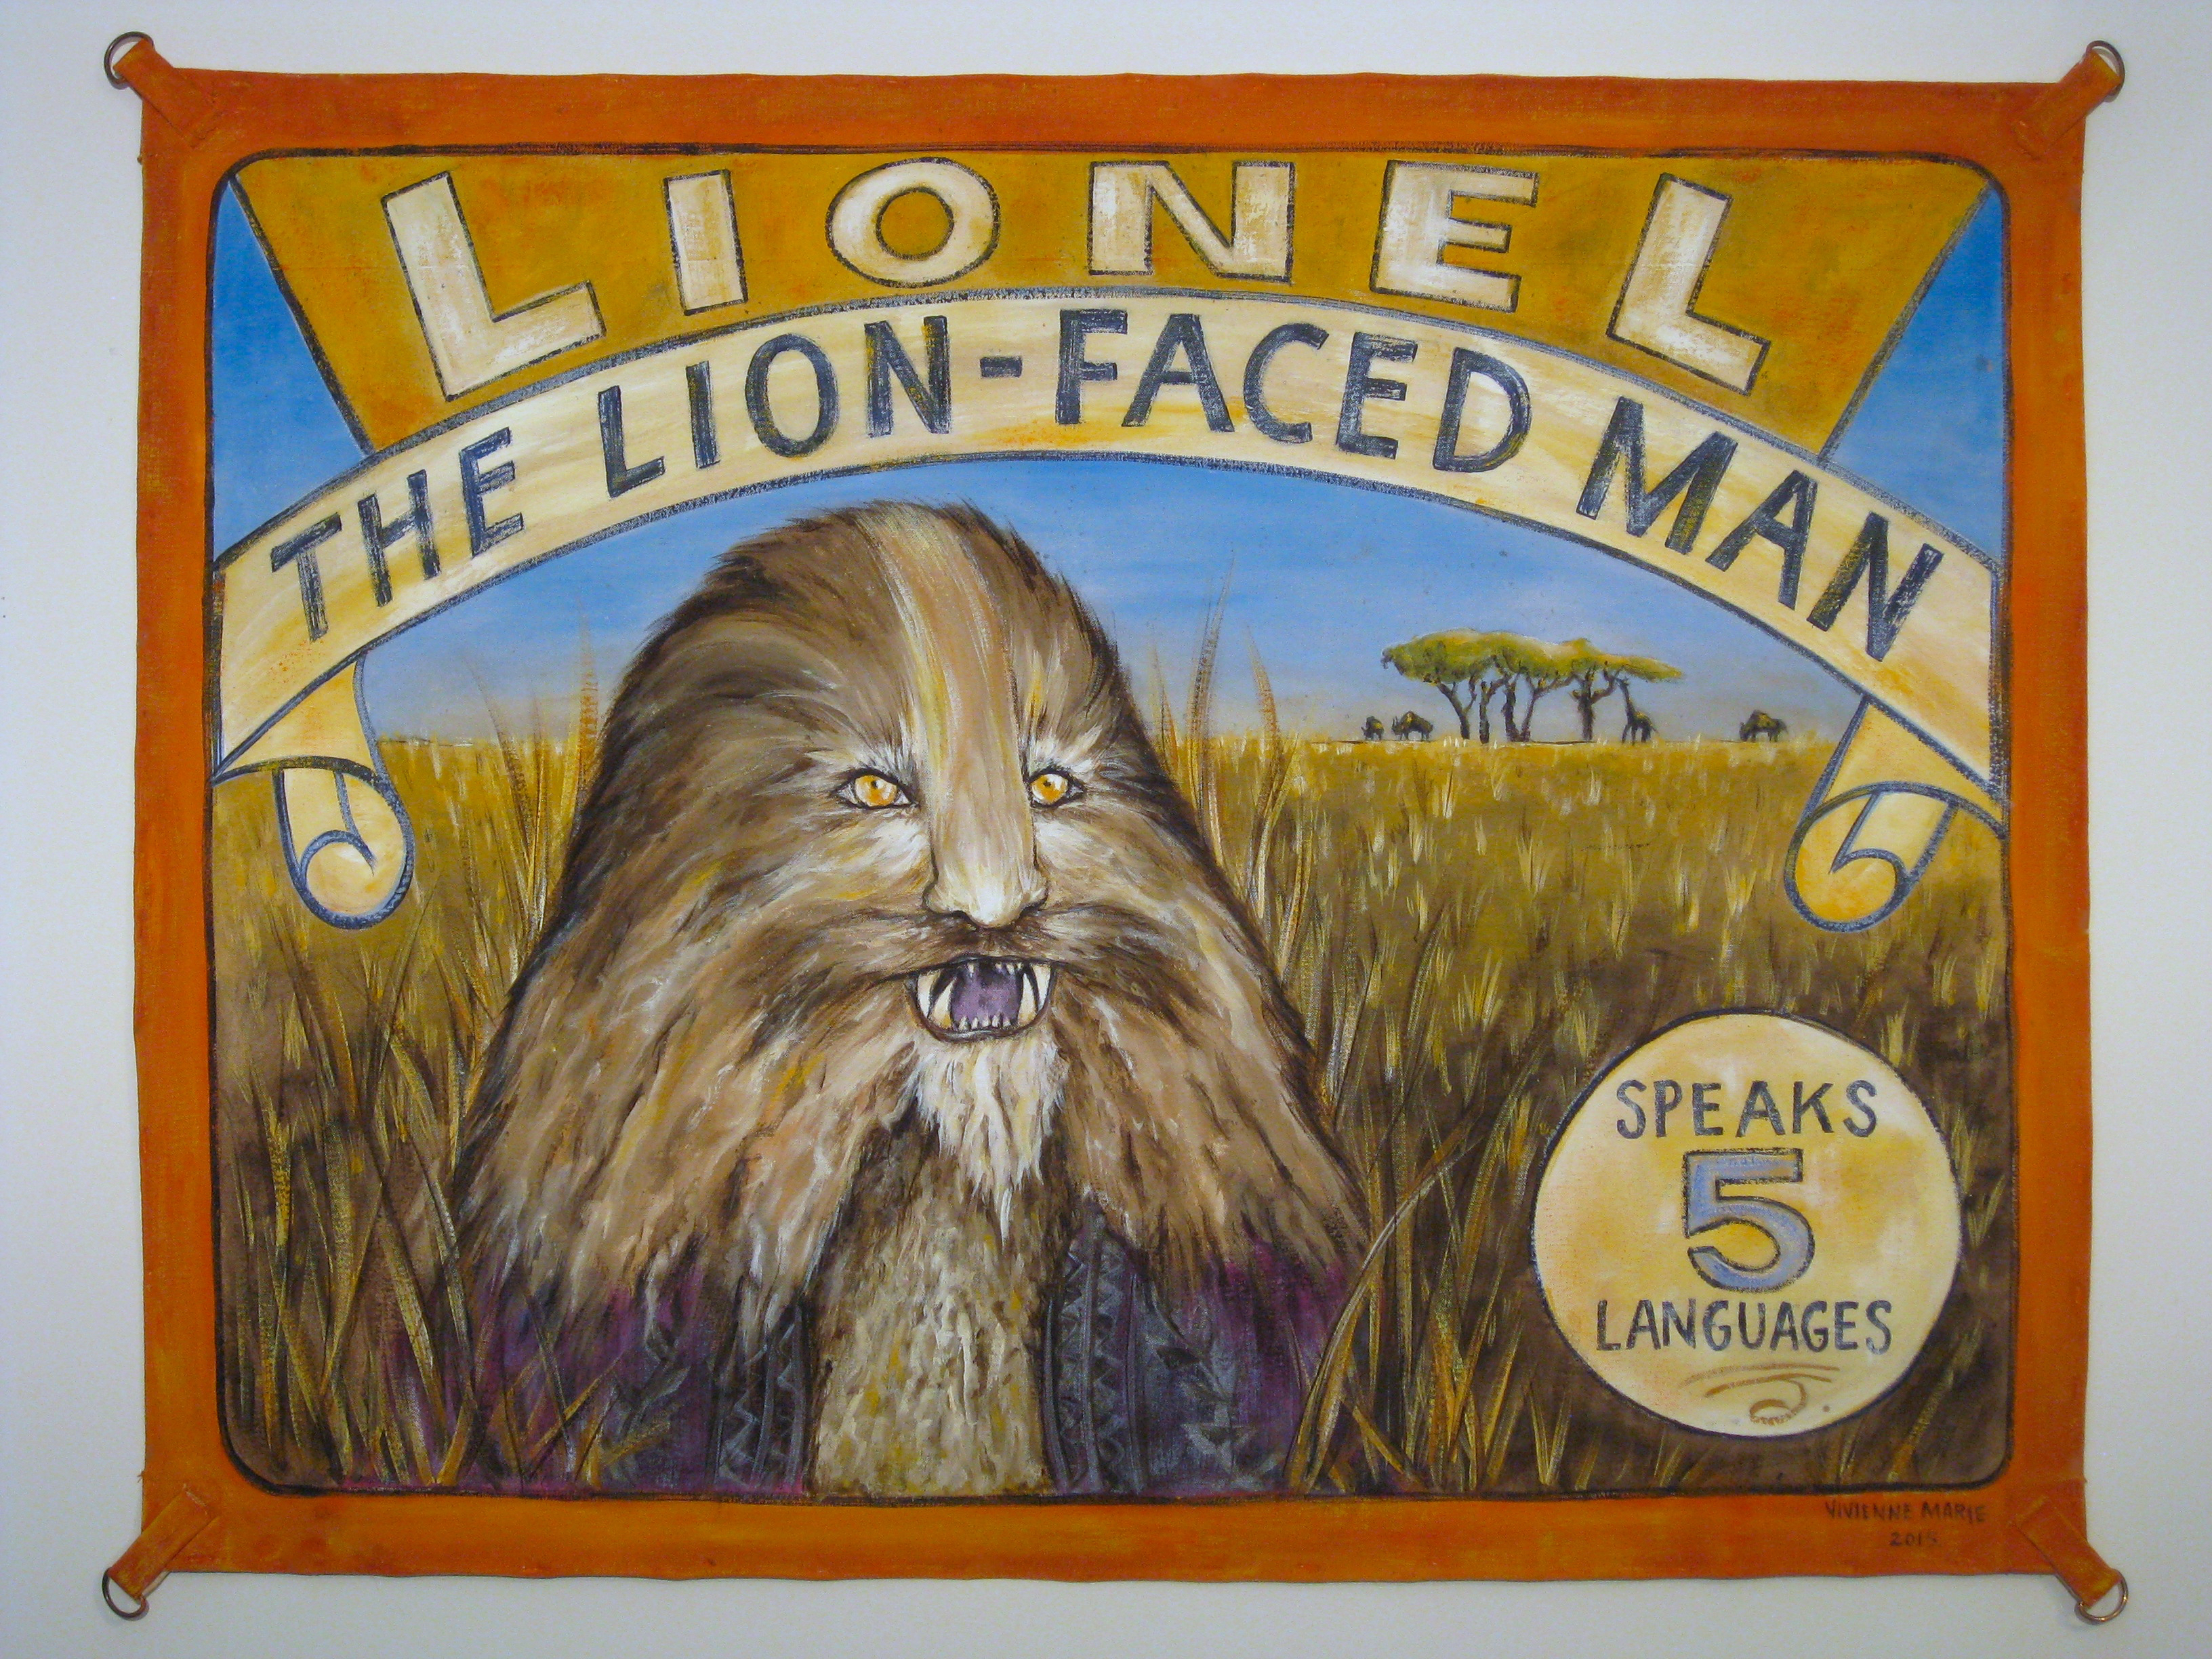 LIONEL: THE LION-FACED MAN